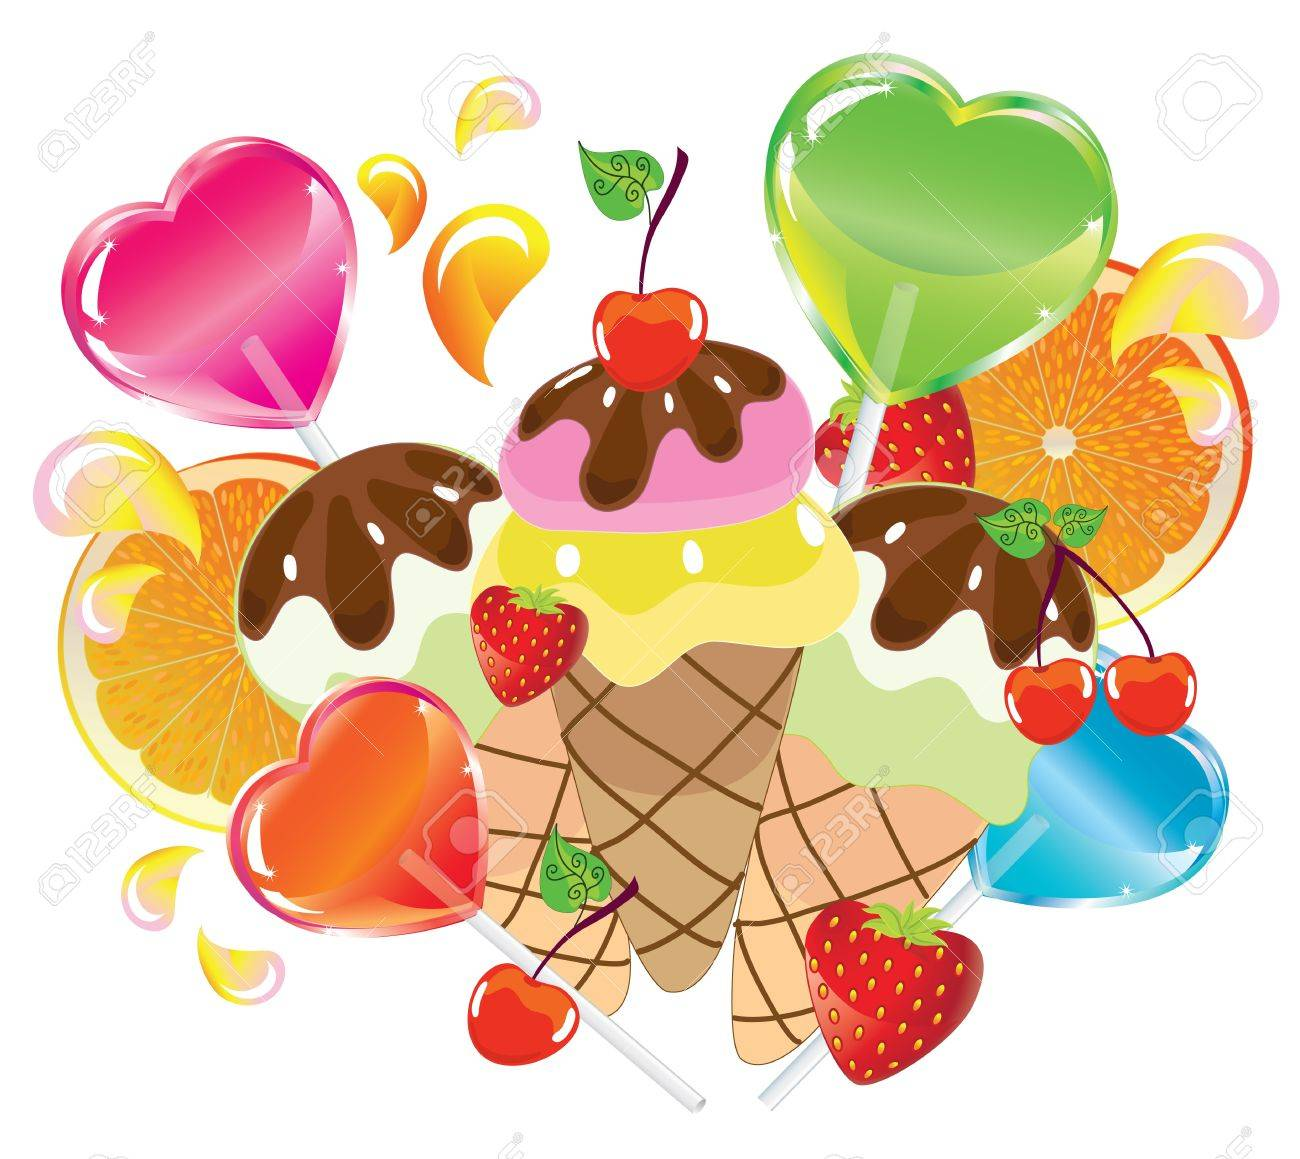 Background with sweets, fruit, berries and ice cream over white Stock Vector - 11830960